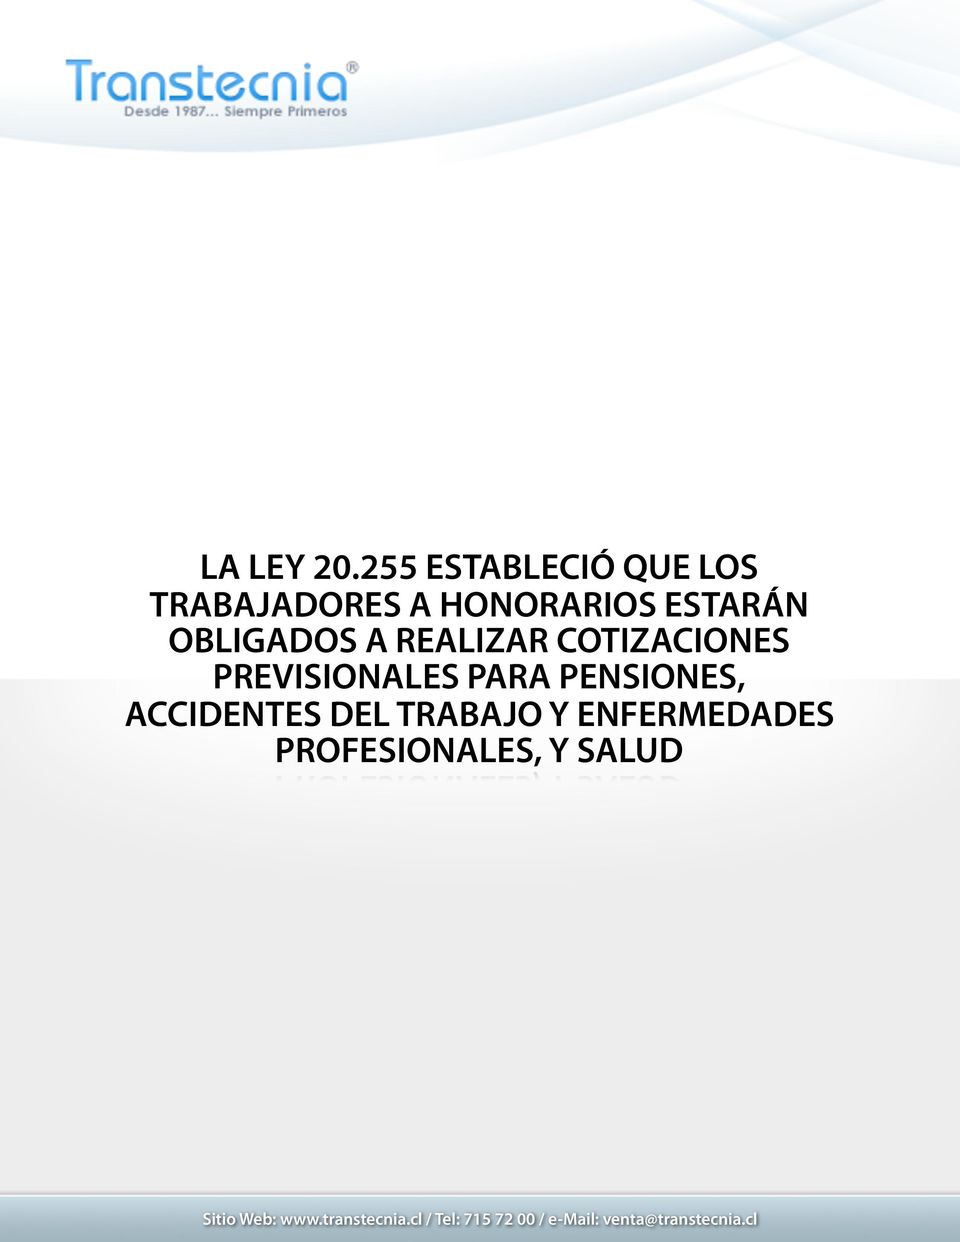 HONORARIOS ESTARÁN OBLIGADOS A REALIZAR